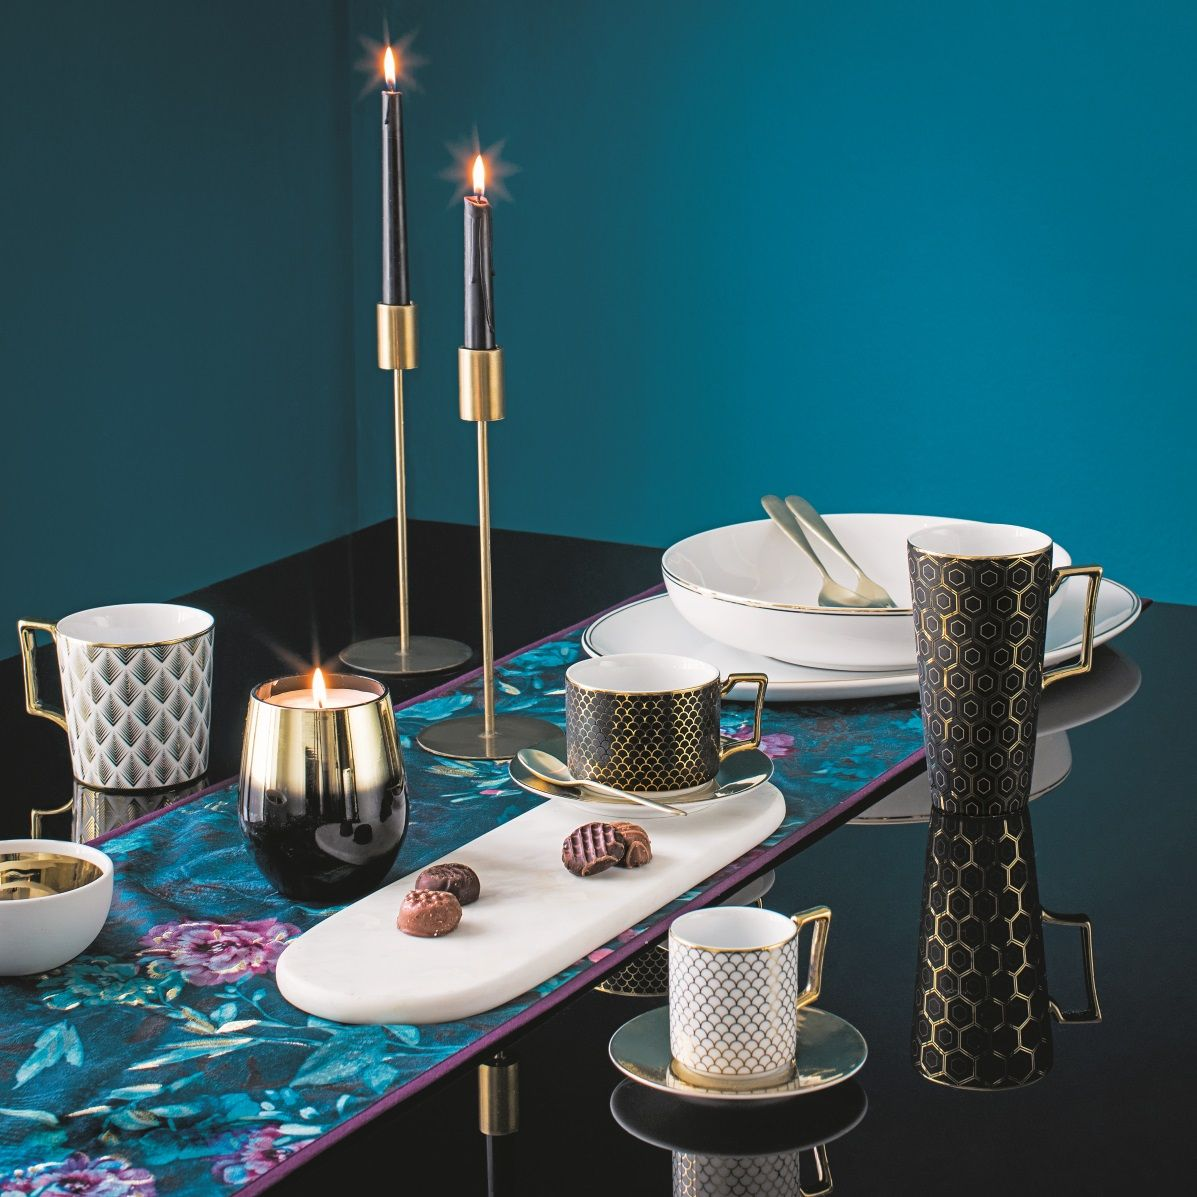 Stunning Aw17 Homeware Collection From Tesco Christmas Table Decorations Dining Area Decor Christmas Table